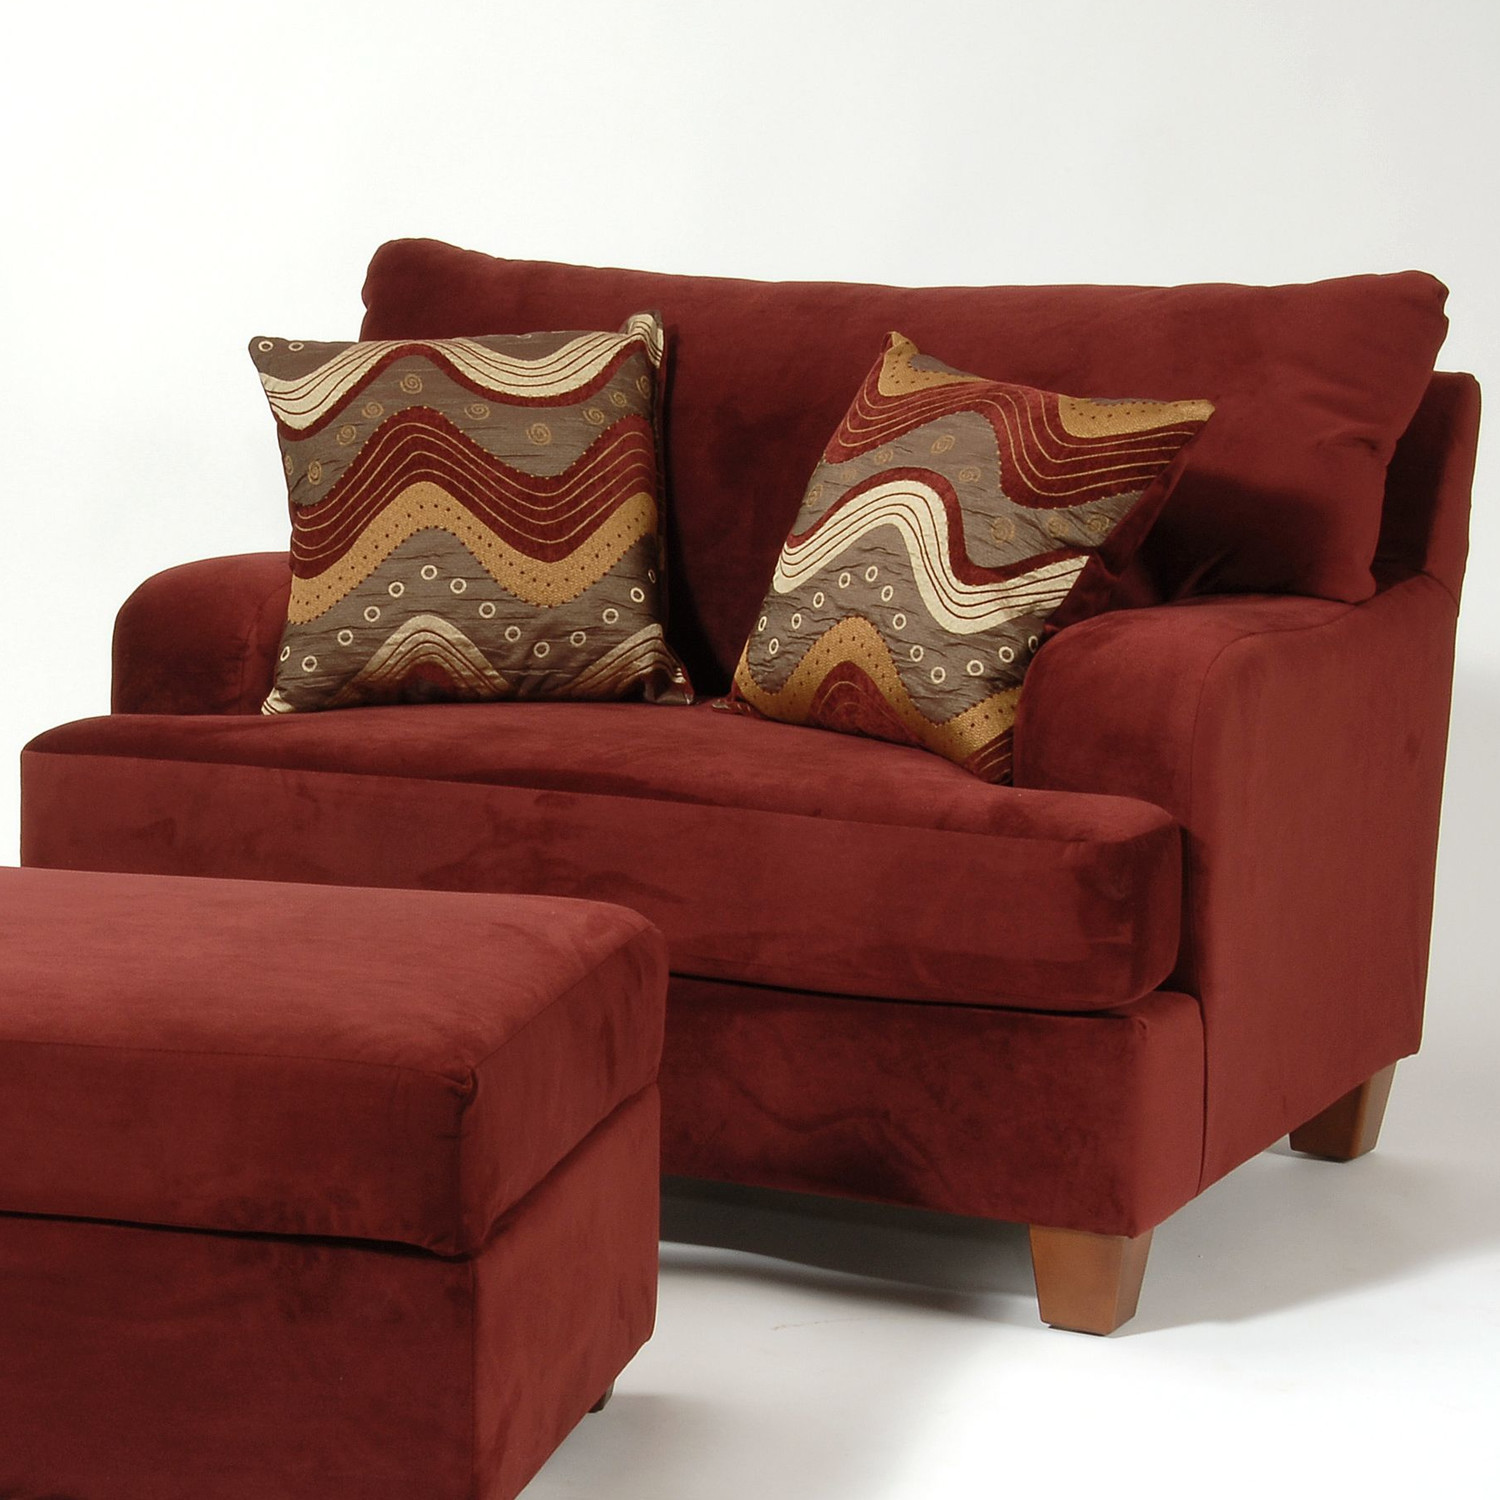 living room chair with ottoman covers for sale johannesburg perfect chairs ottomans homesfeed